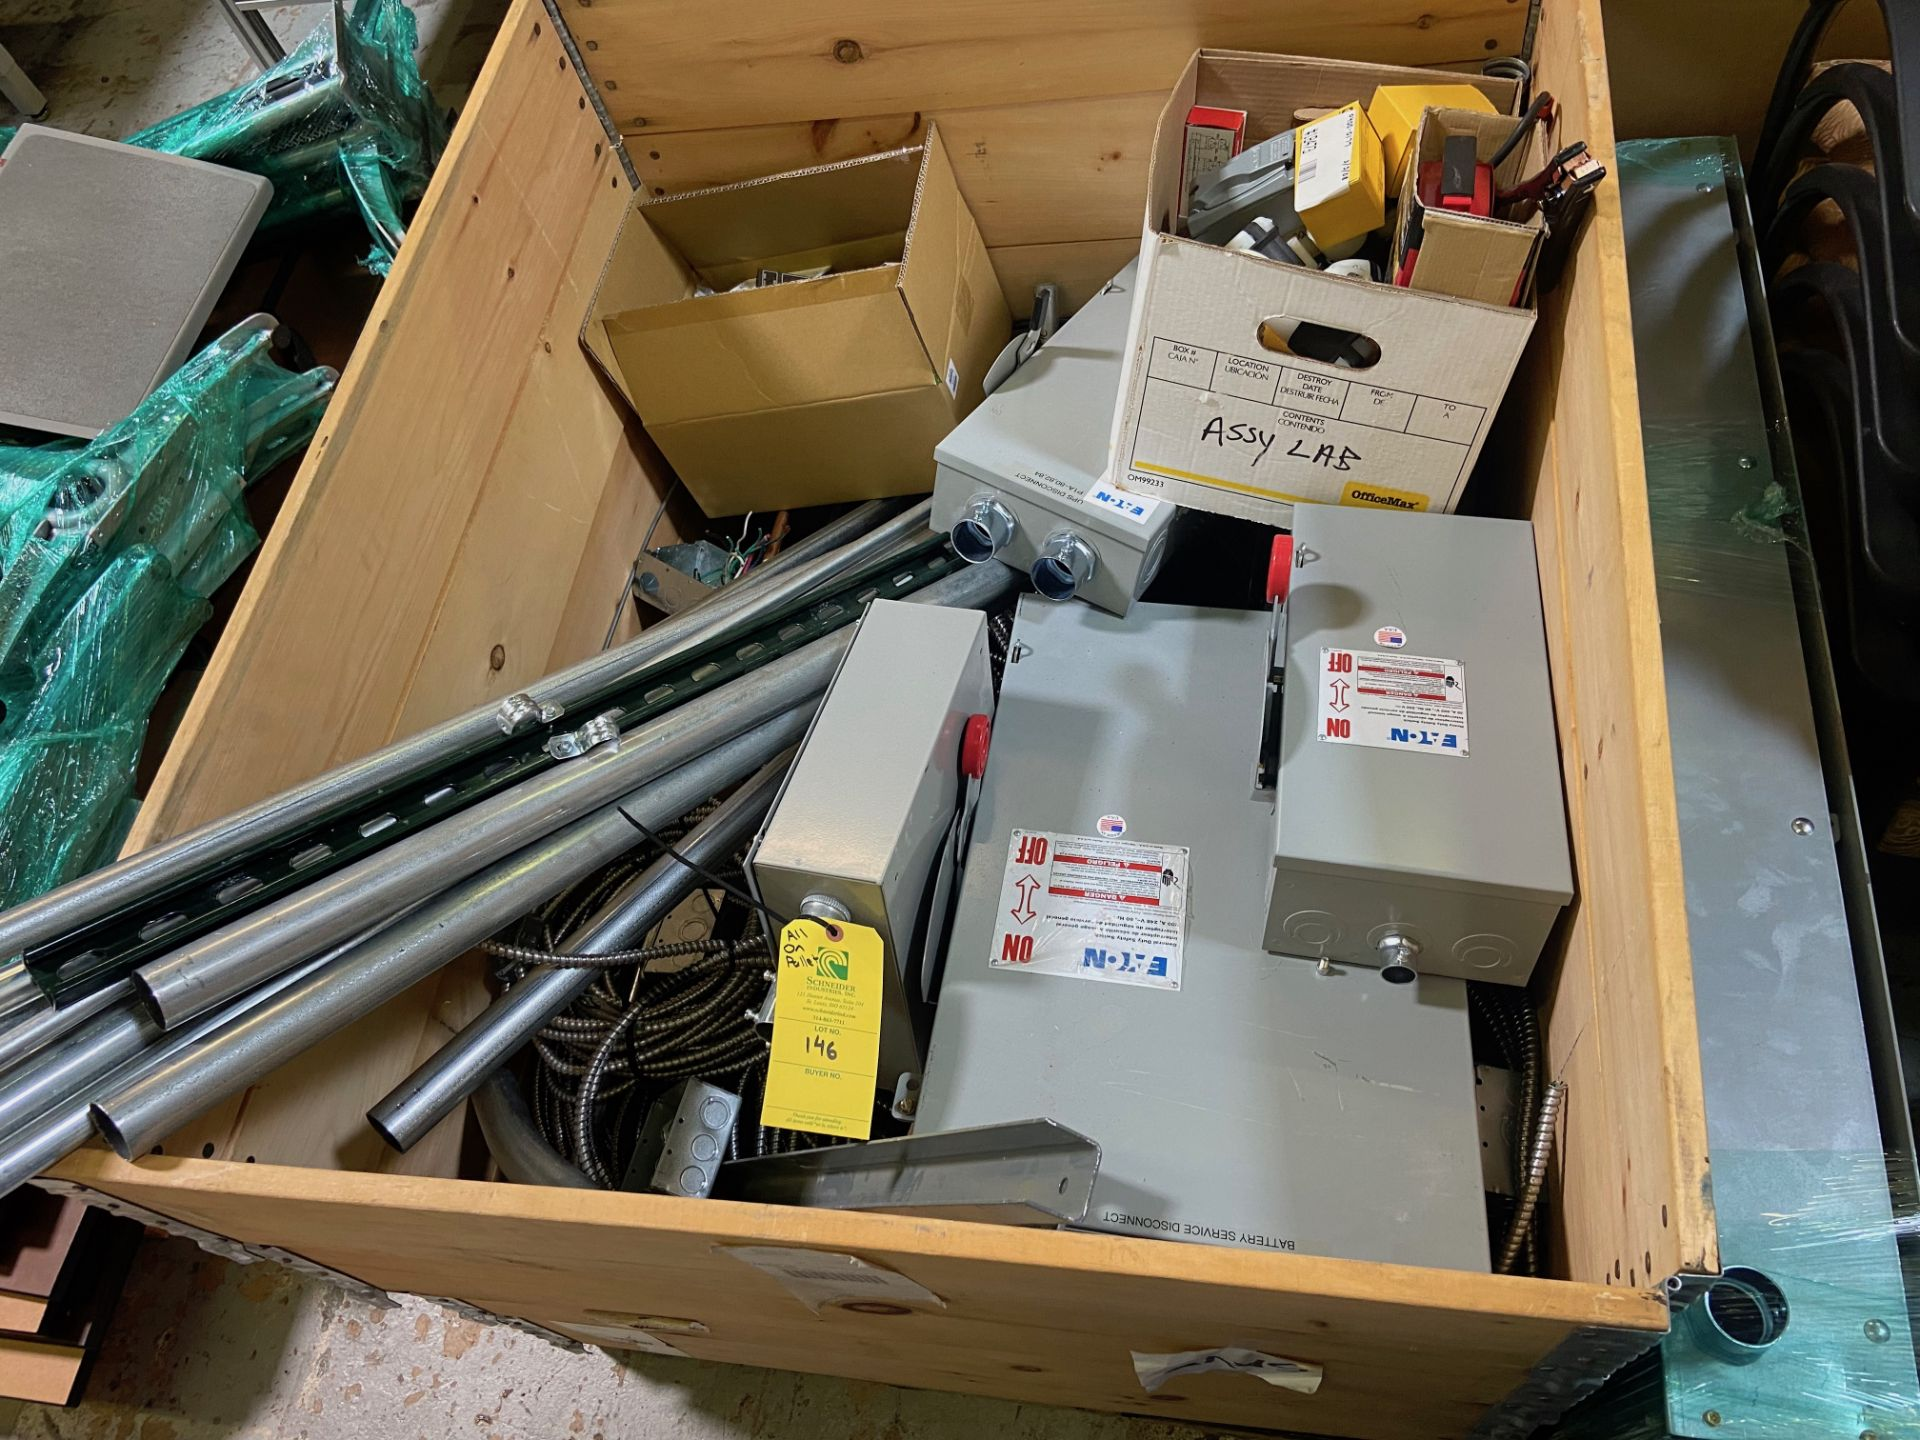 Pallet of Electrical Components, Includes: (SEE PHOTOS FOR ALL INCLUDED) Eaton Heavy Duty Safety - Image 3 of 19